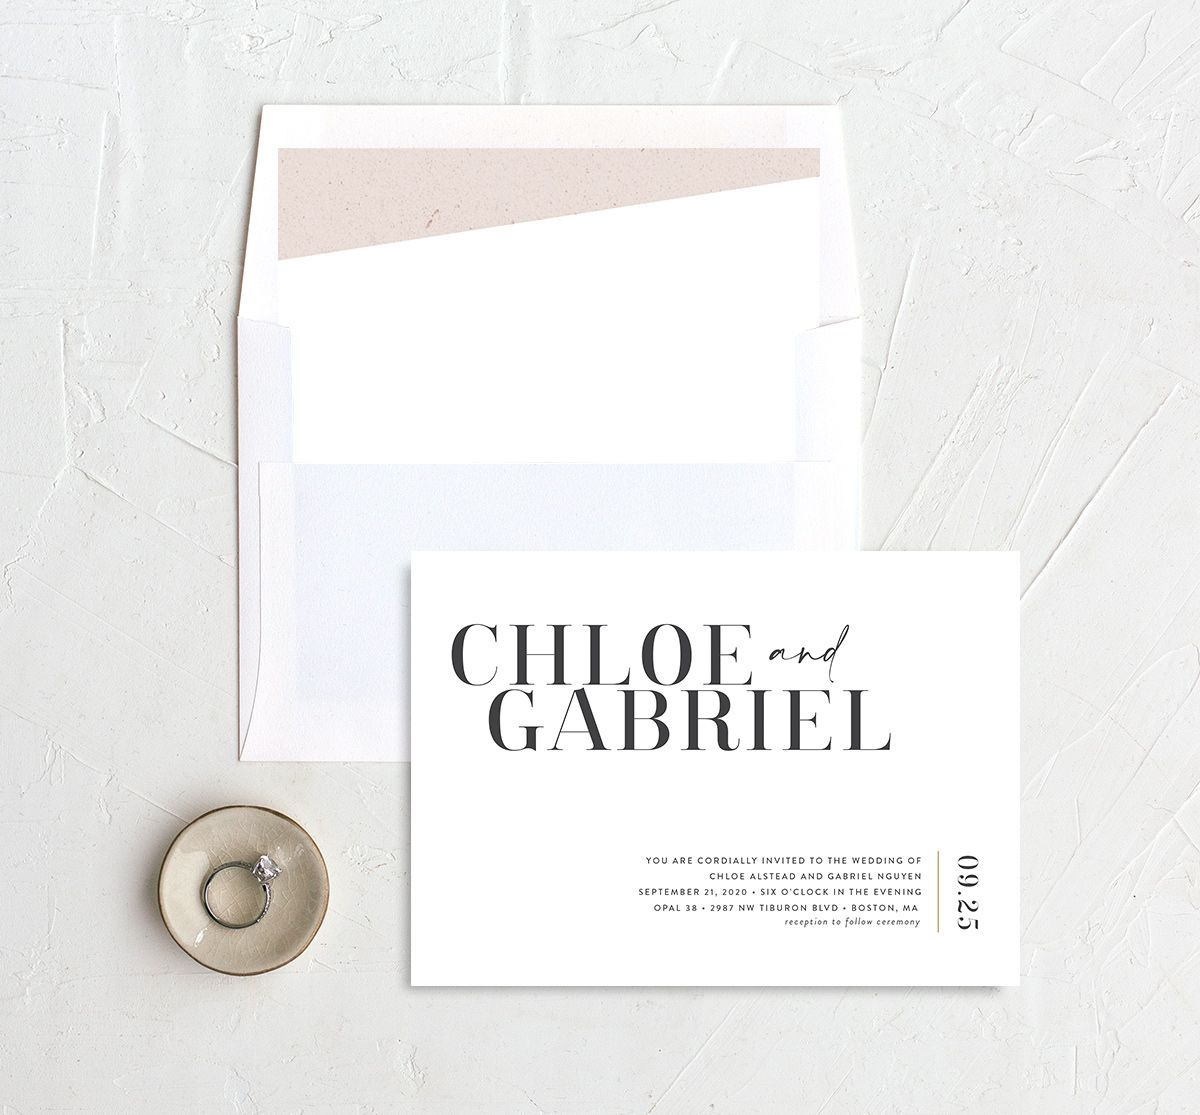 Minimal Chic wedding invite with liner in white